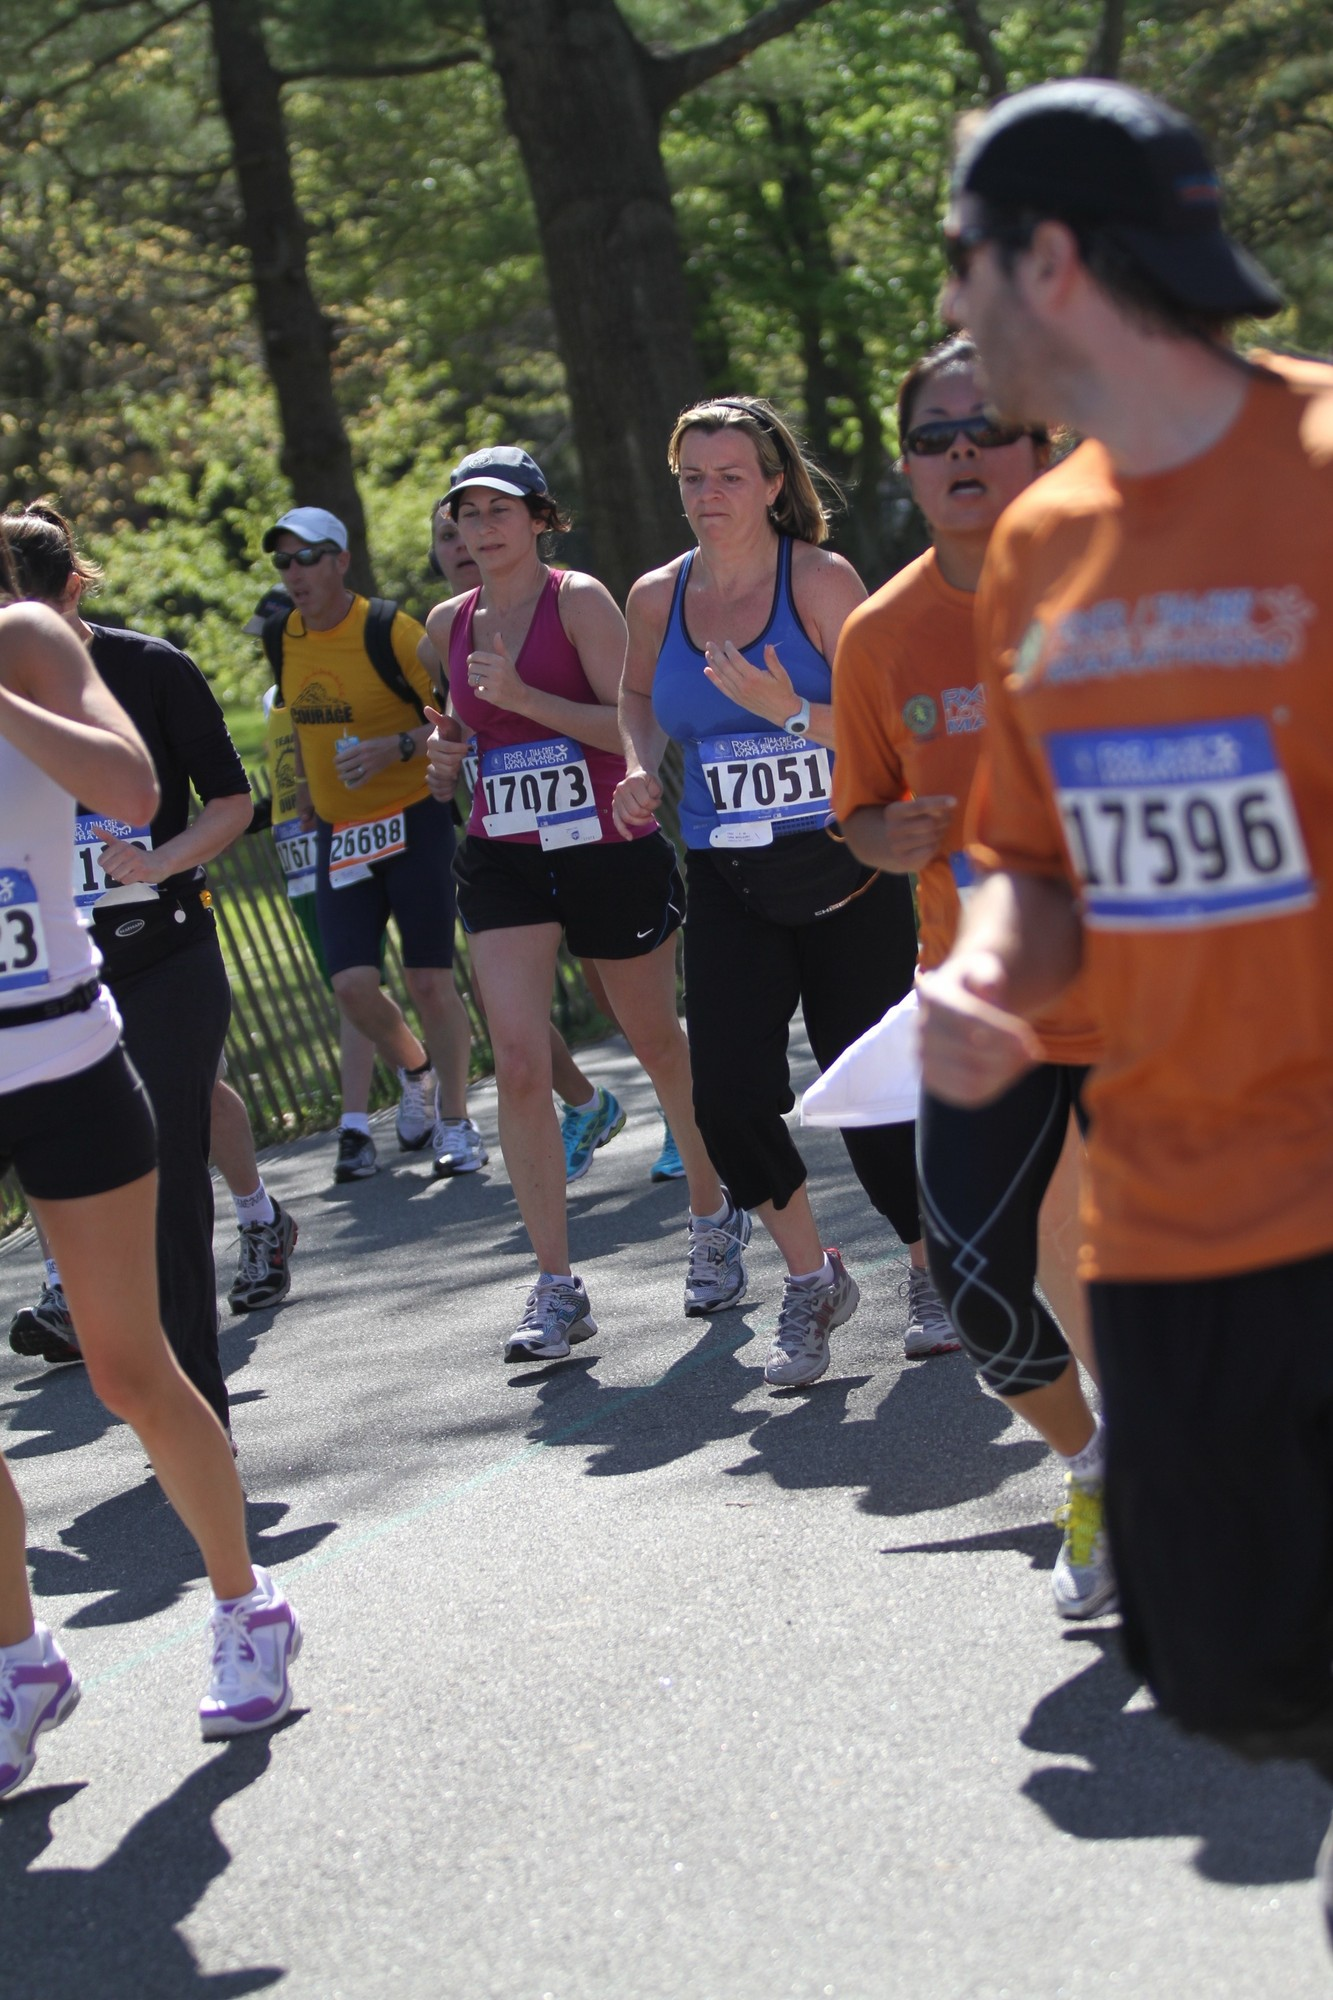 Nassau County Police are increasing security measures for this Sunday's Long Island Marathon